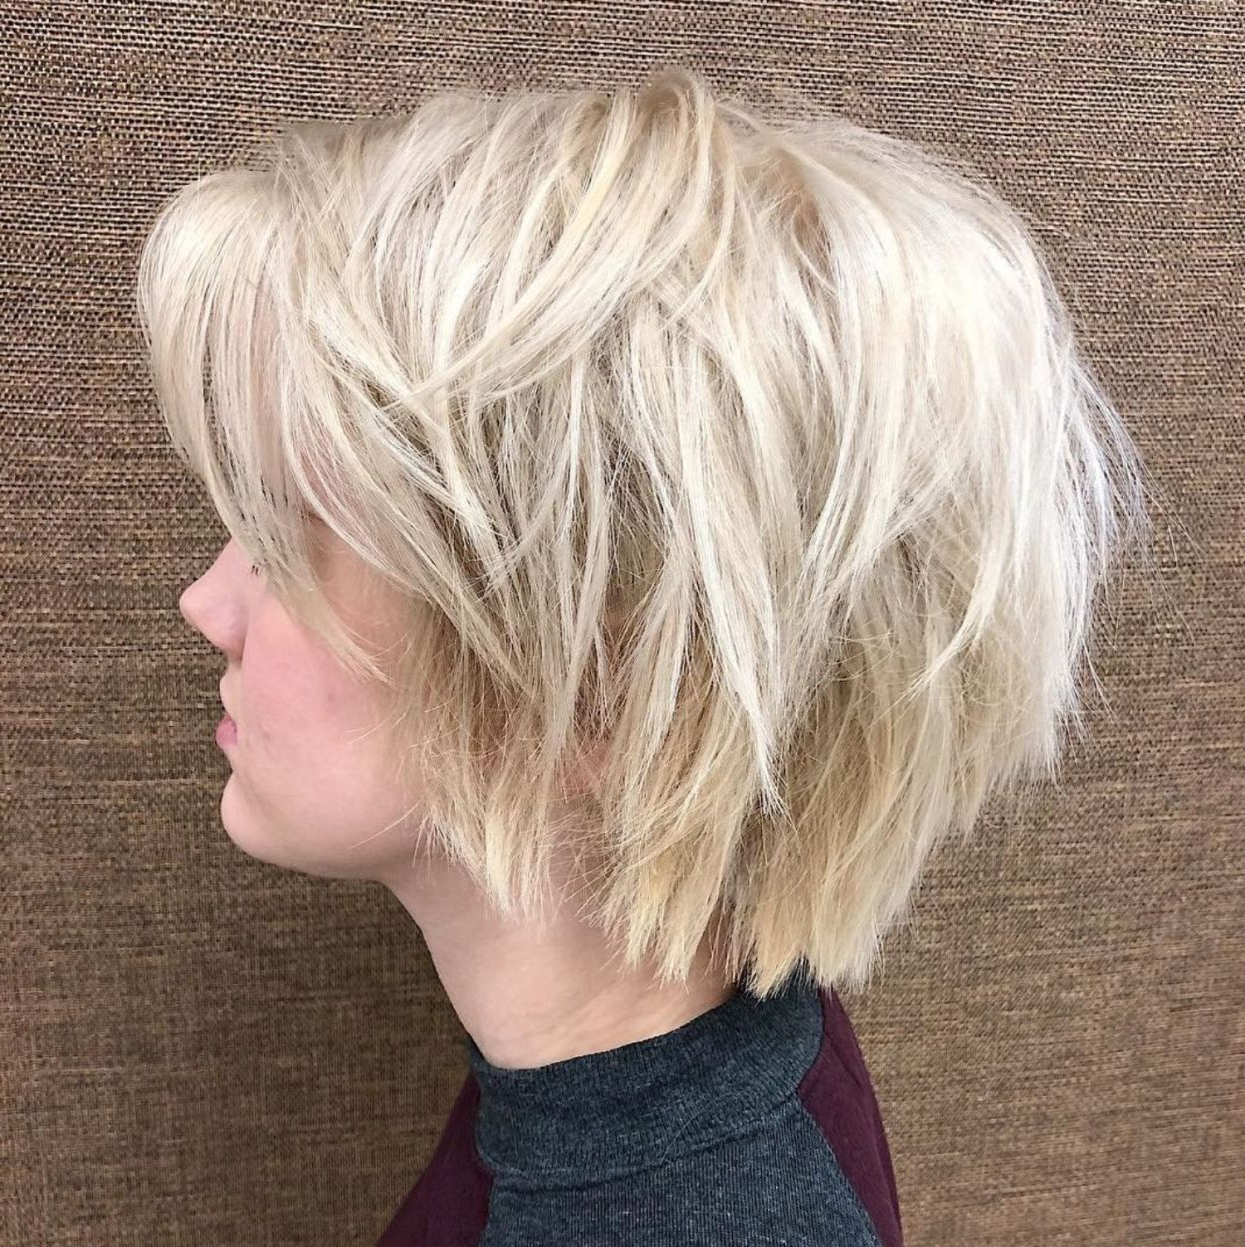 60 Short Shag Hairstyles That You Simply Can't Miss | Choppy Pertaining To Short Shag Bob Haircuts (Gallery 6 of 20)